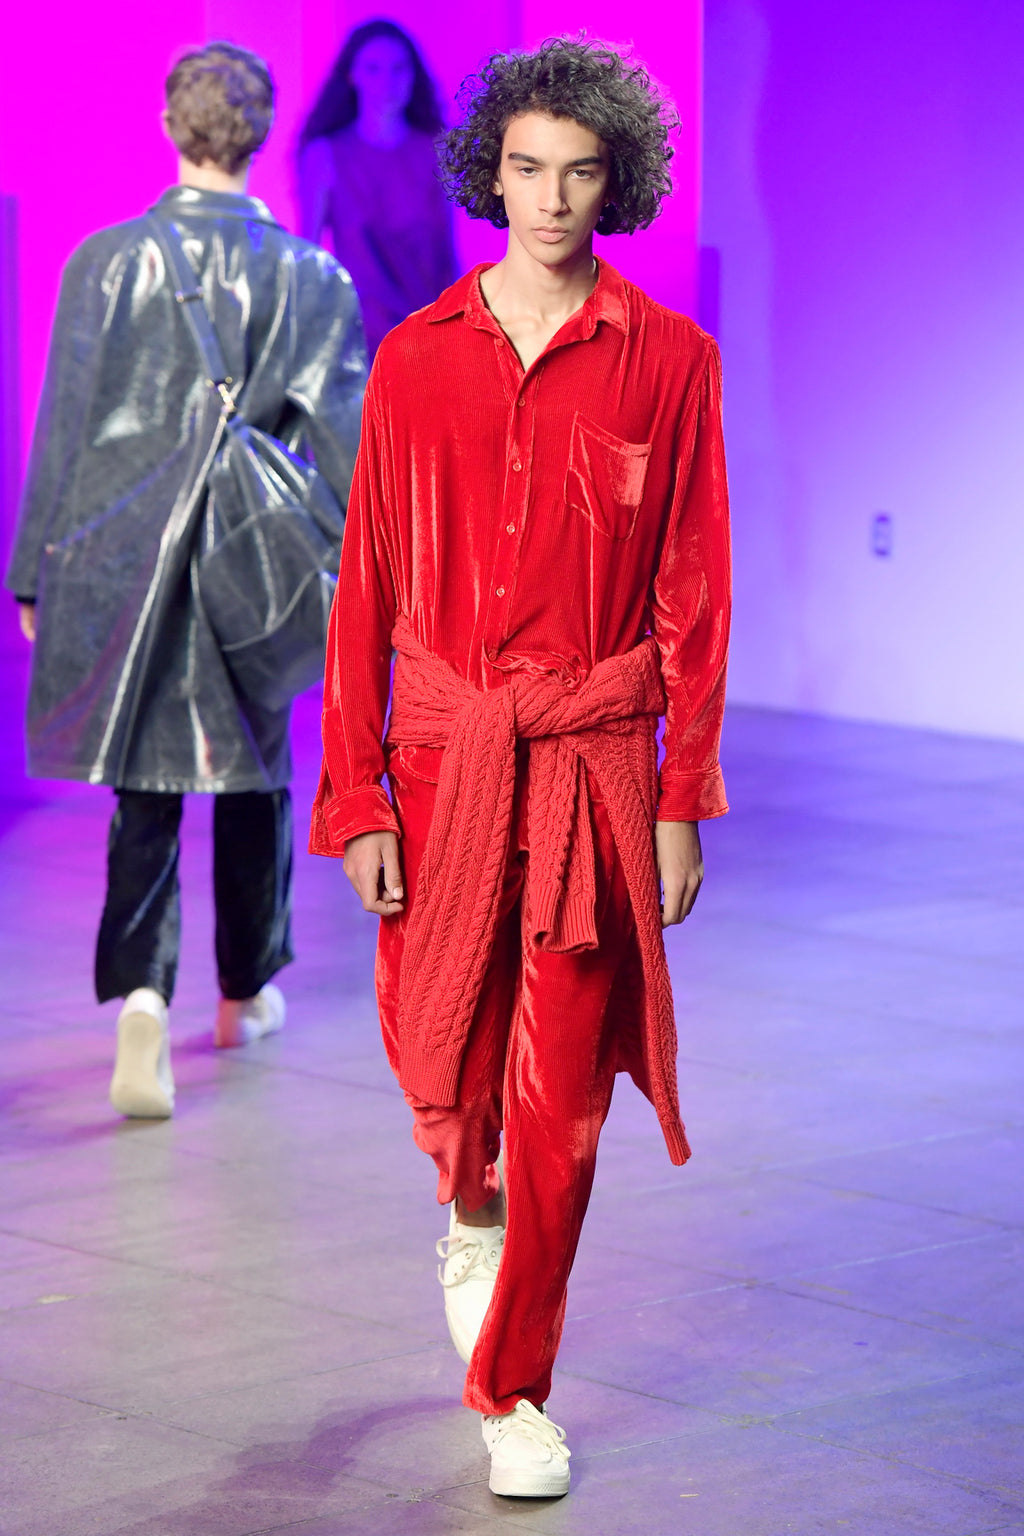 Look 34 from the Sies Marjan Fall/Winter 2018 runway show.